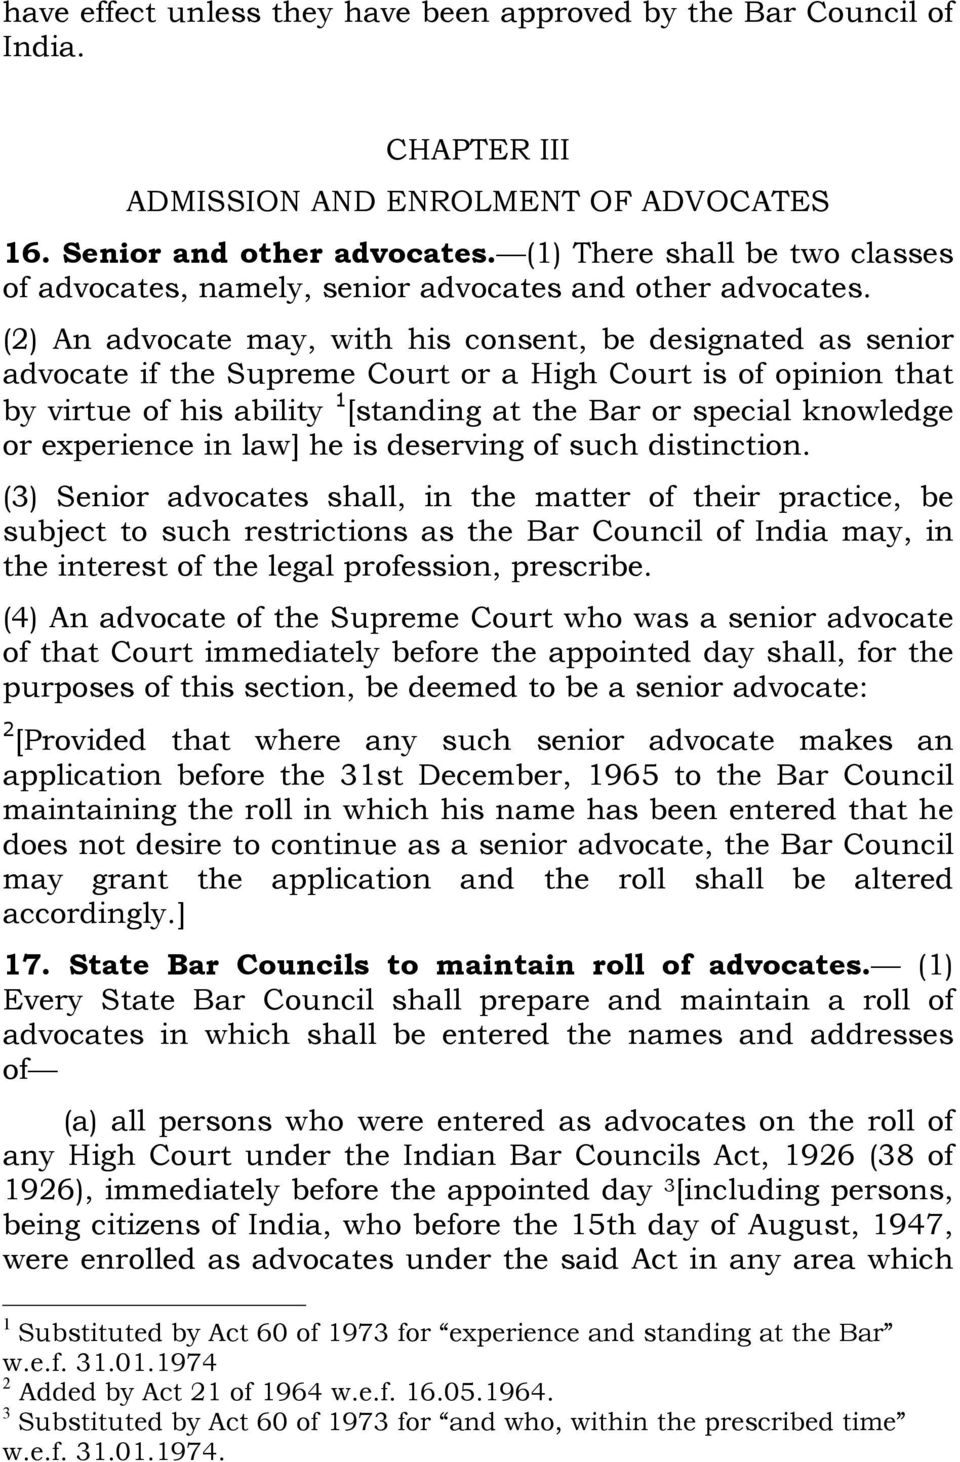 (2) An advocate may, with his consent, be designated as senior advocate if the Supreme Court or a High Court is of opinion that by virtue of his ability [standing at the Bar or special knowledge or